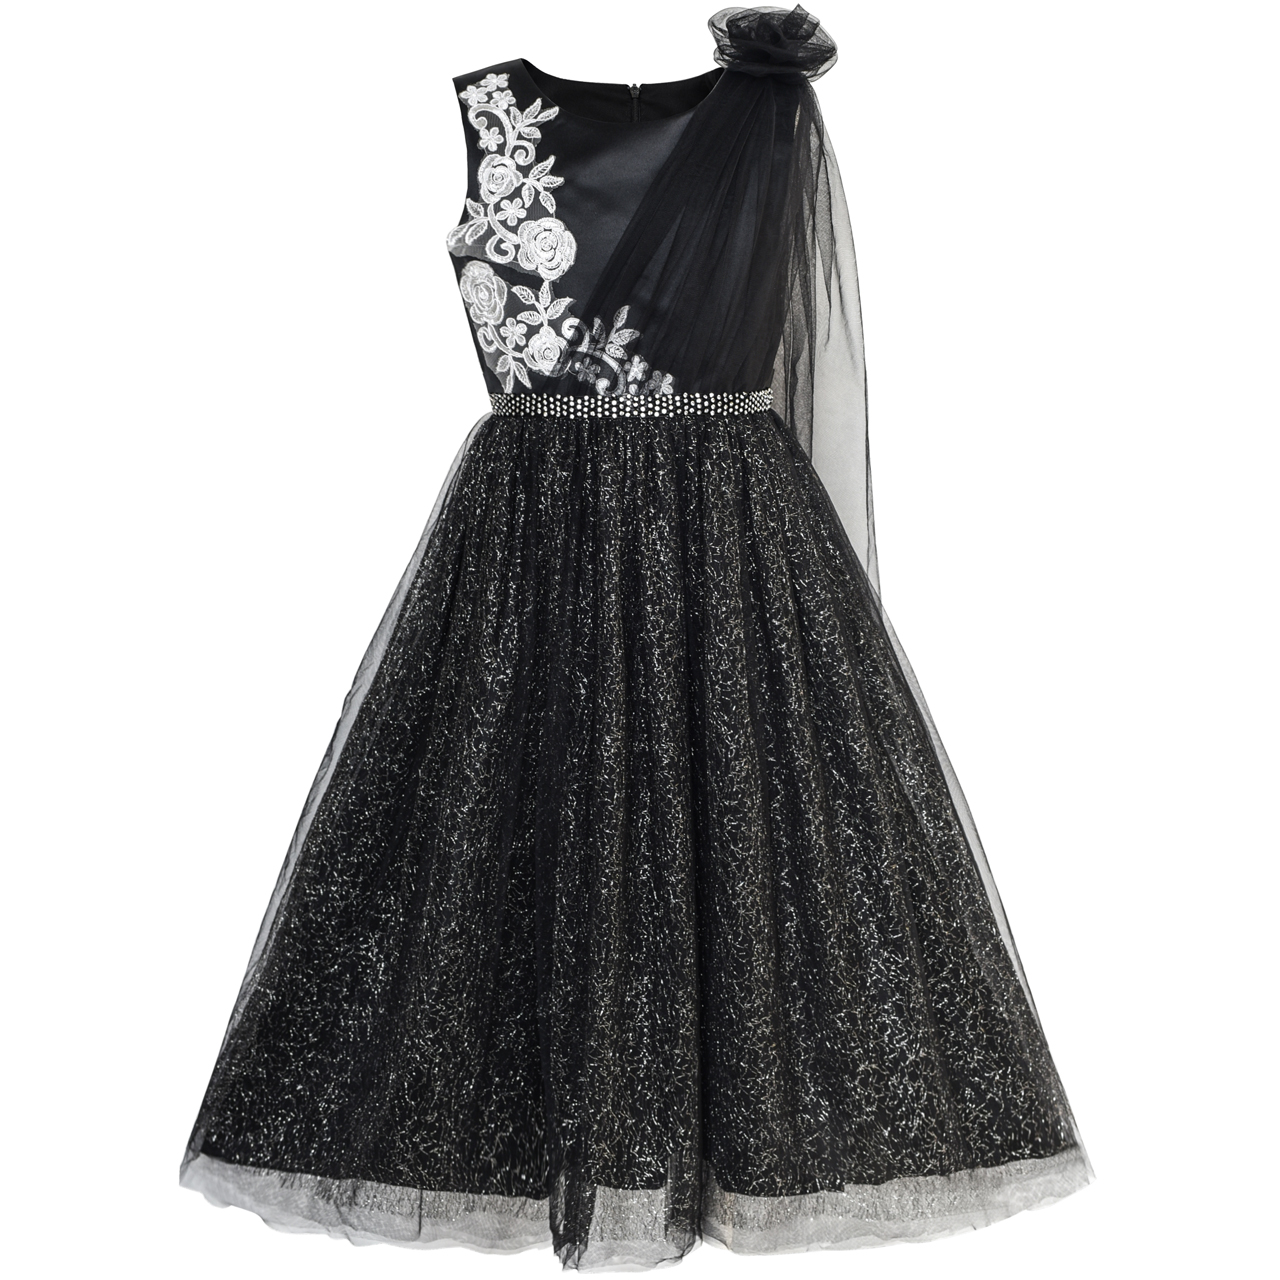 Girls Dress Black Sparkling Tulle Lace Party Prom Gown 2018 Summer Princess Wedding Dresses Kids Clothes Size 6 12